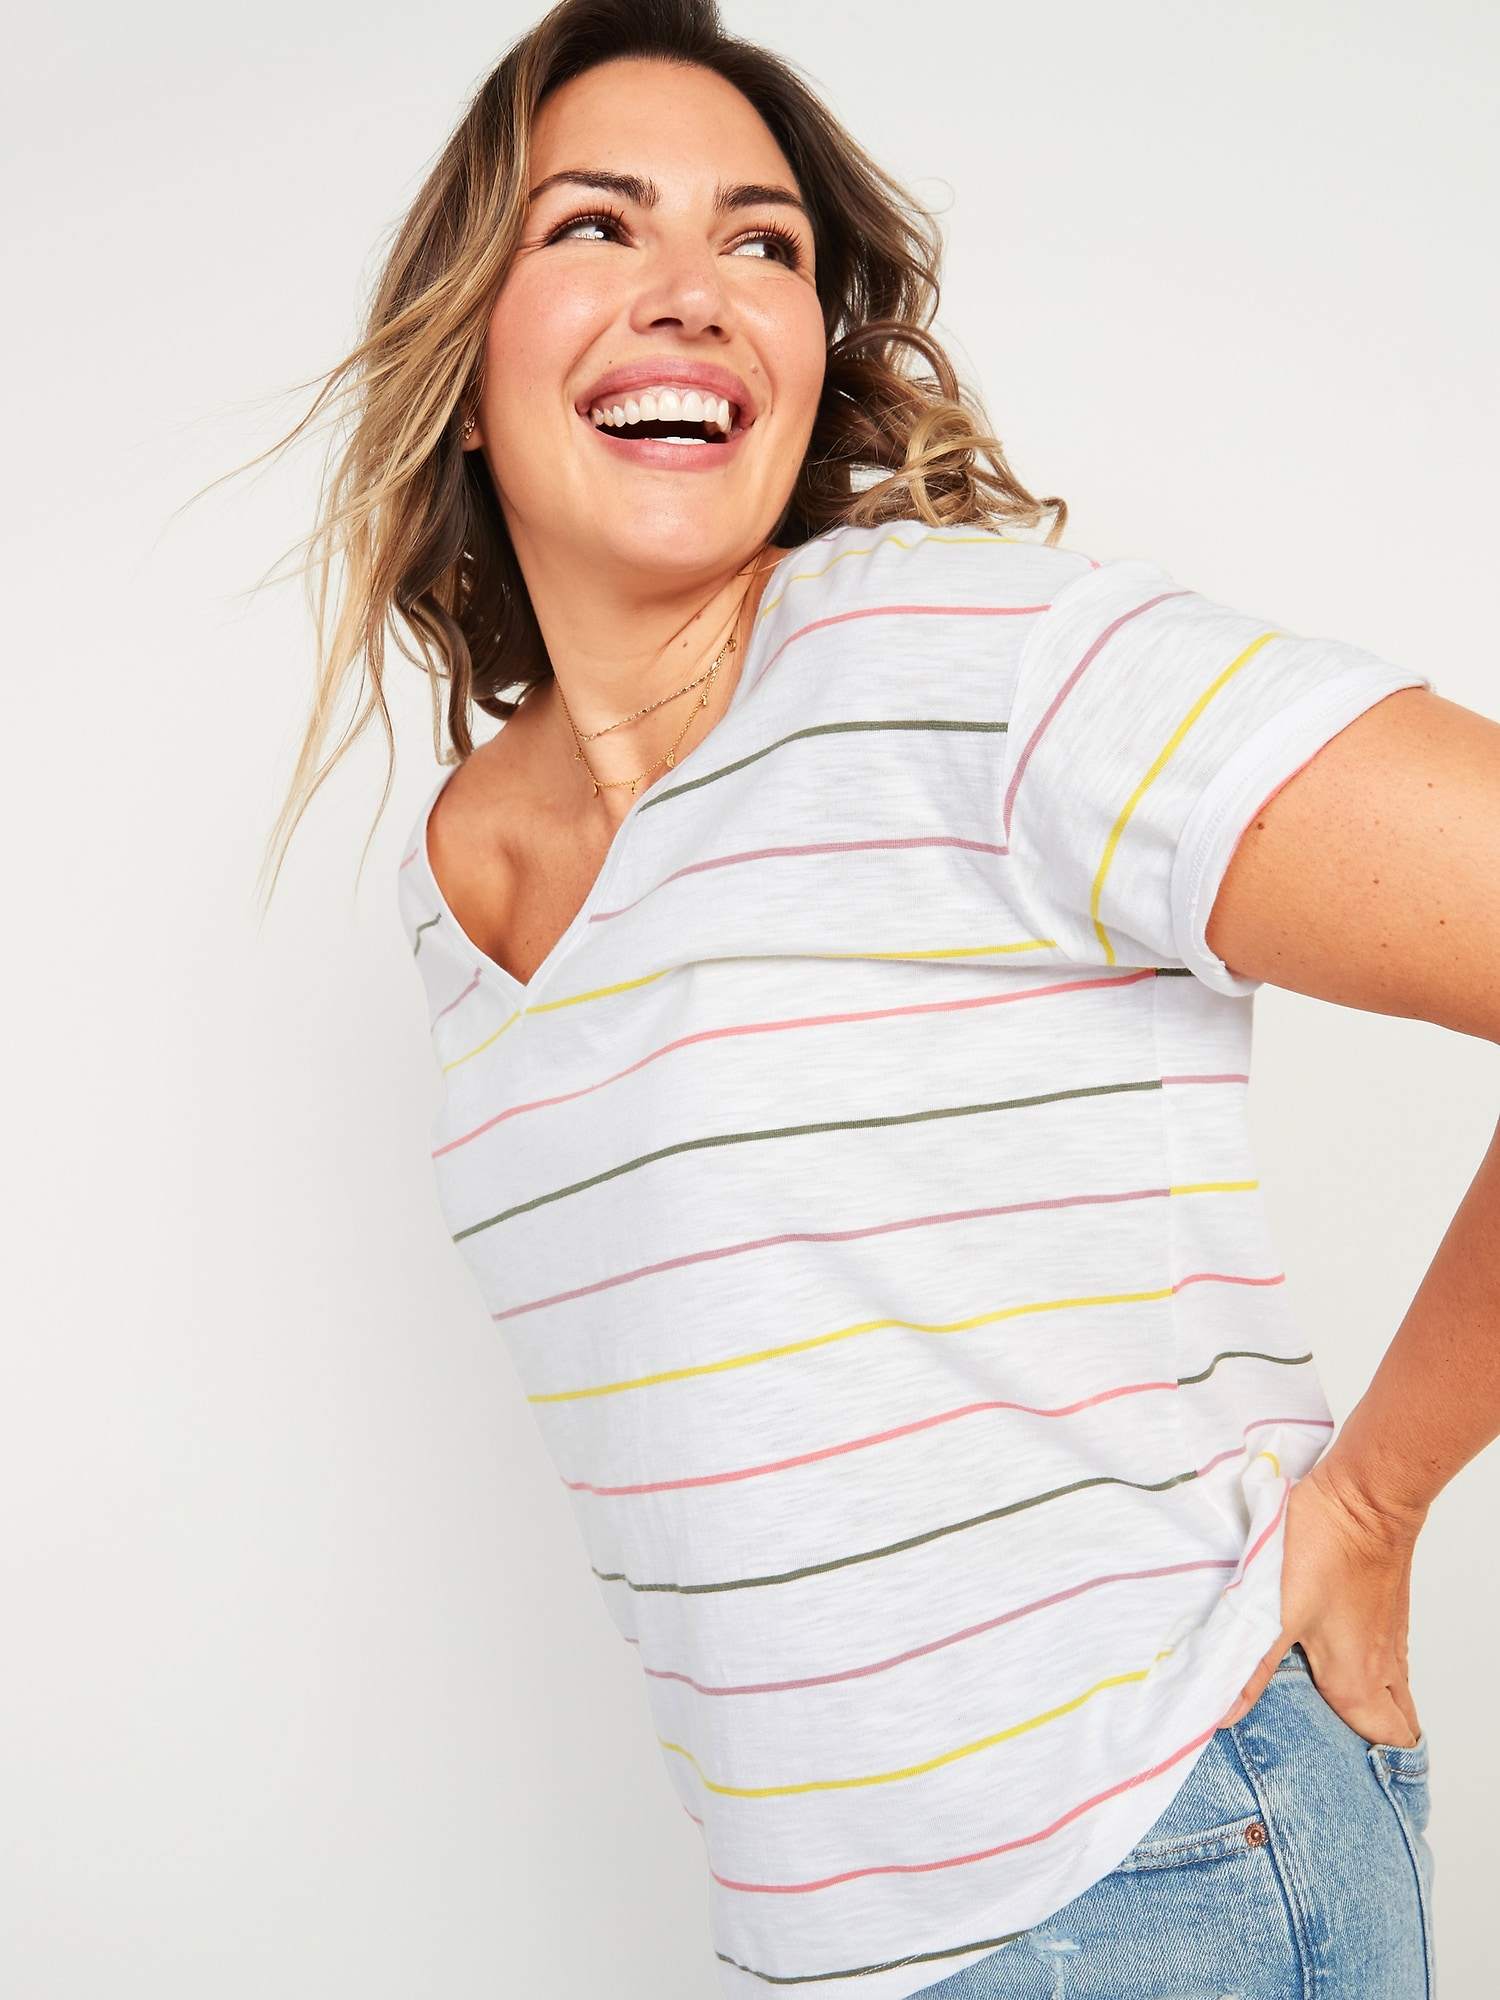 a woman wearing a white shirt with pink and yellow stripes